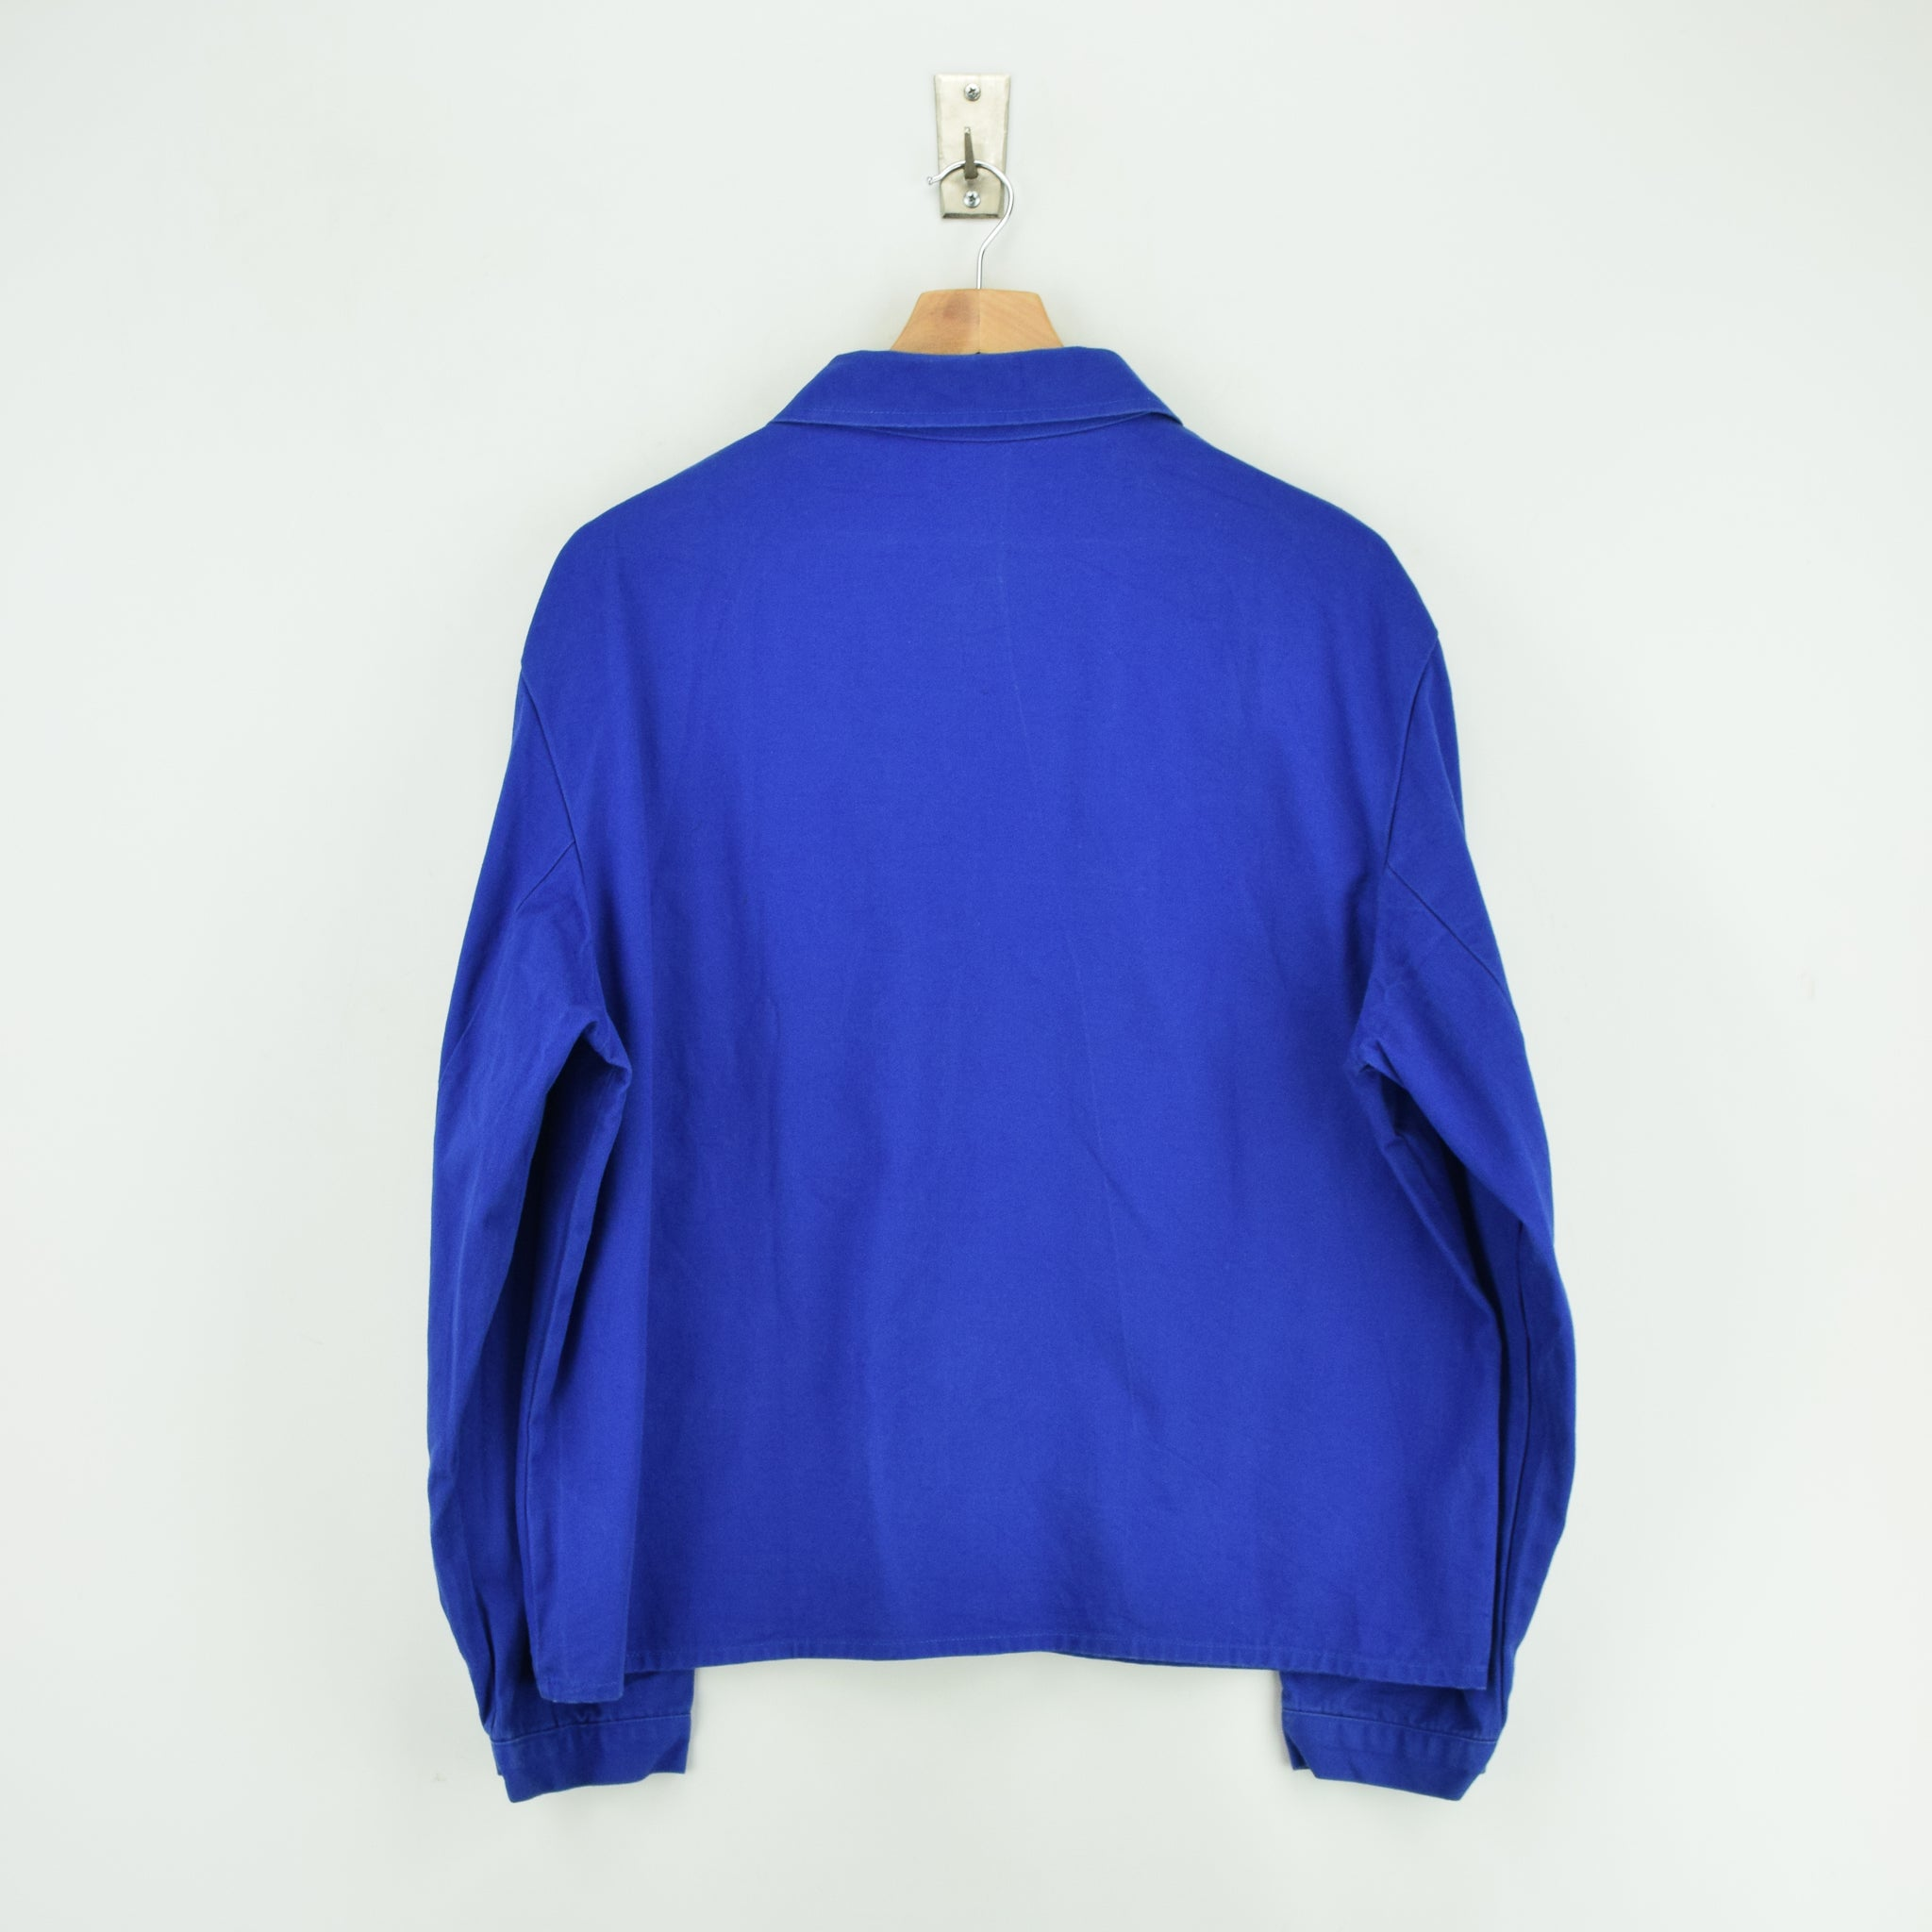 Vintage Bright Blue French Style Worker Sanforized Chore Shirt Jacket M / L back